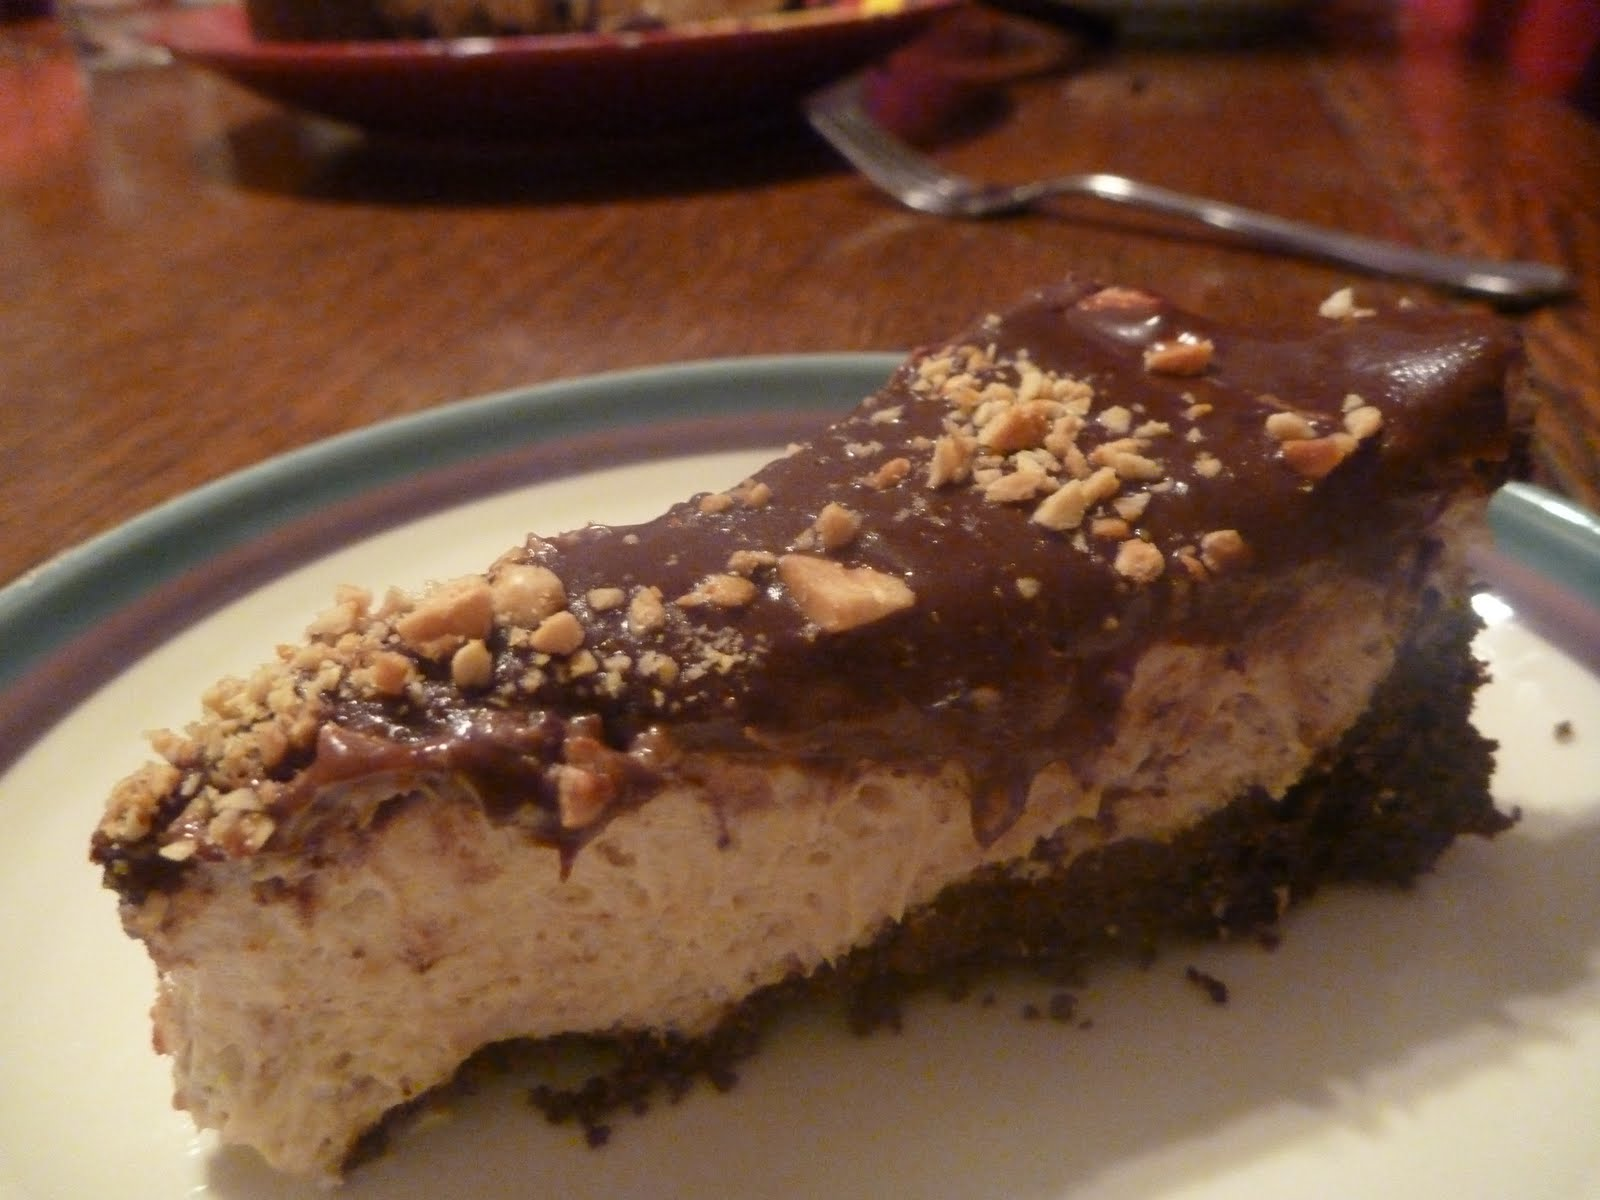 Download image Chocolate Peanut Butter Pie PC, Android, iPhone and ...